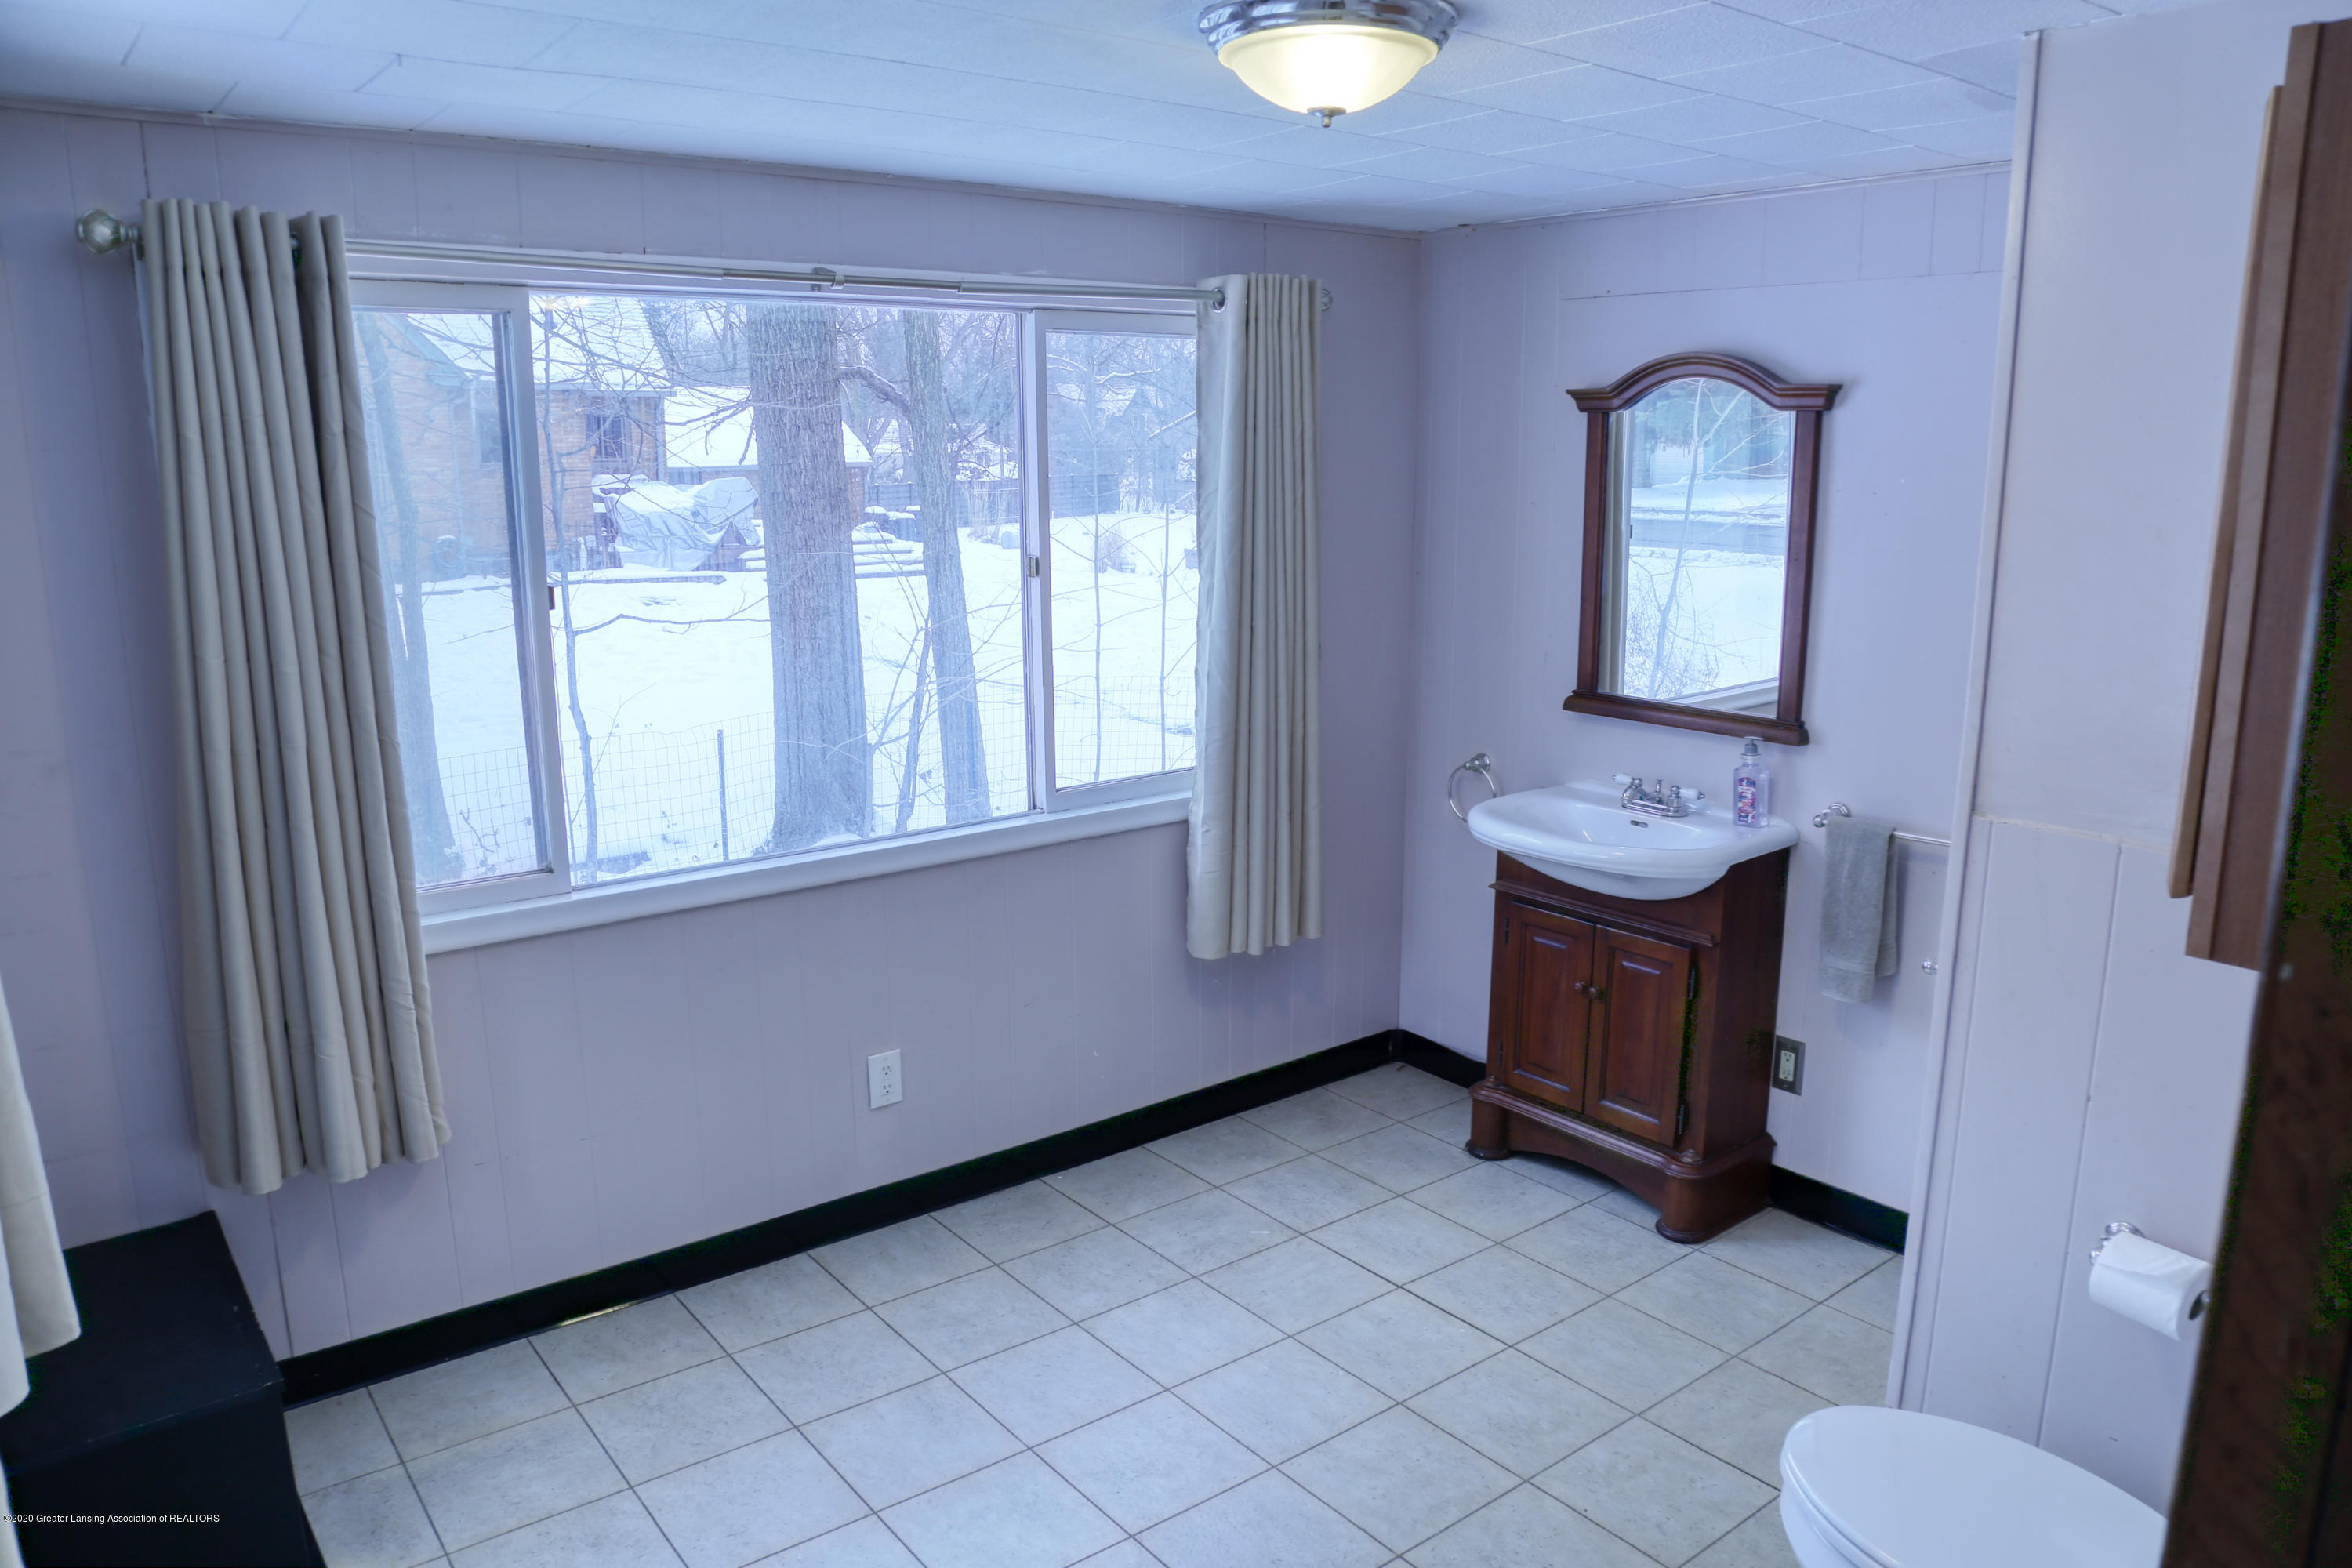 234 N Hagadorn Rd - bathroom - 22